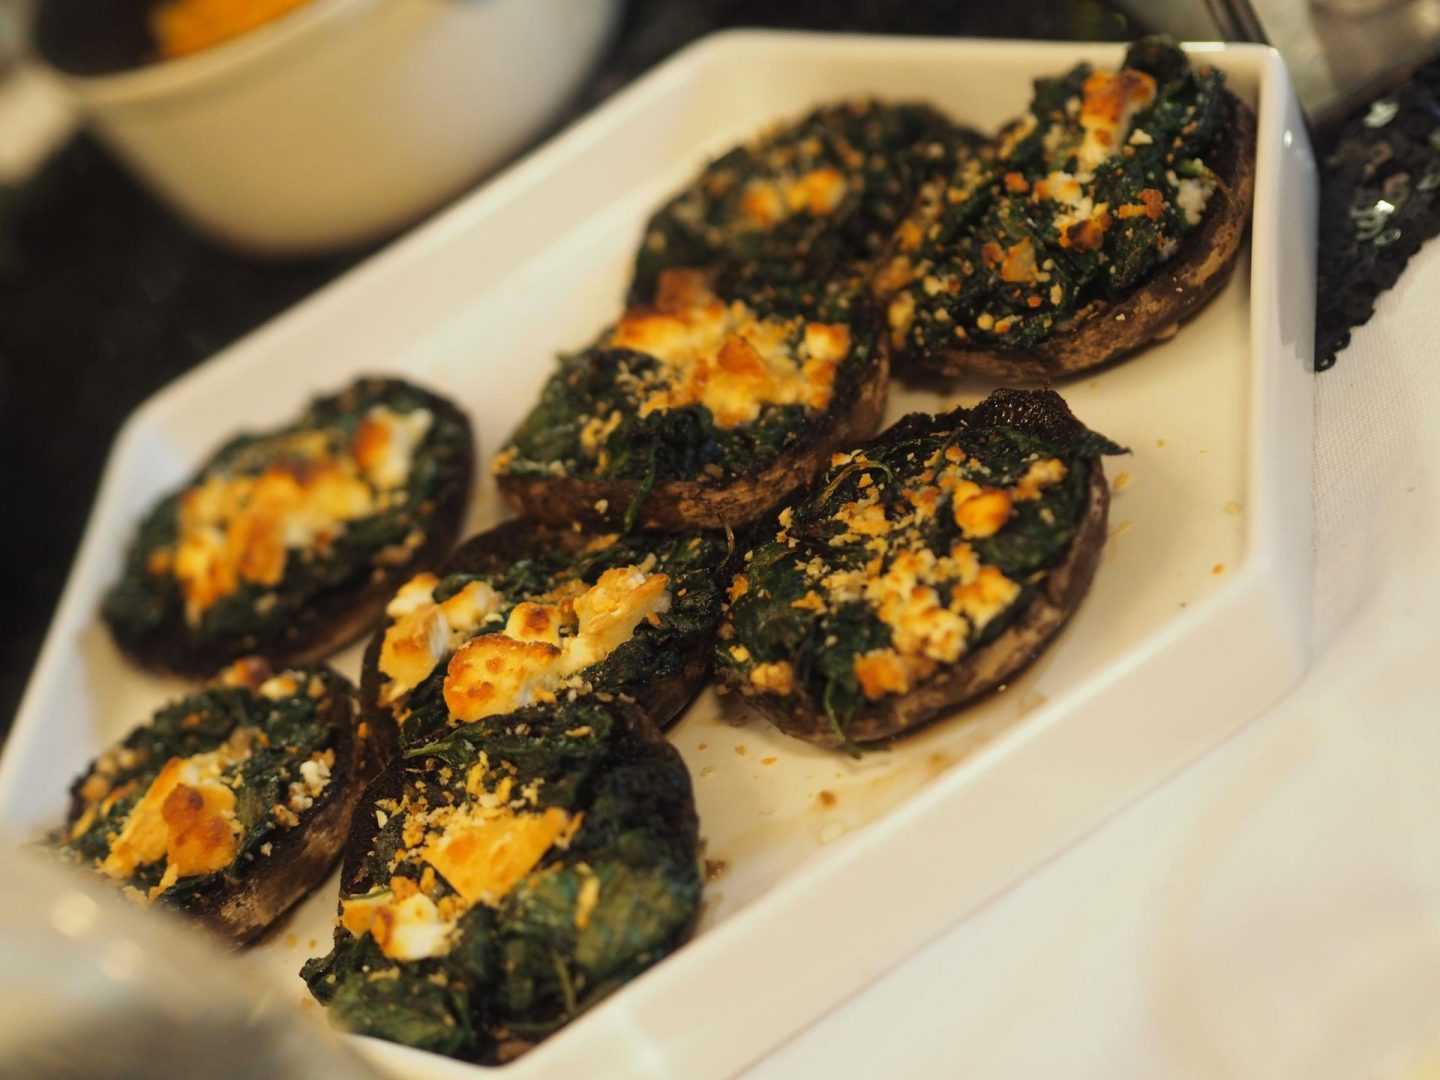 EatFirst Portobello Mushrooms filled with spinach, goats cheese and herbed crumbs